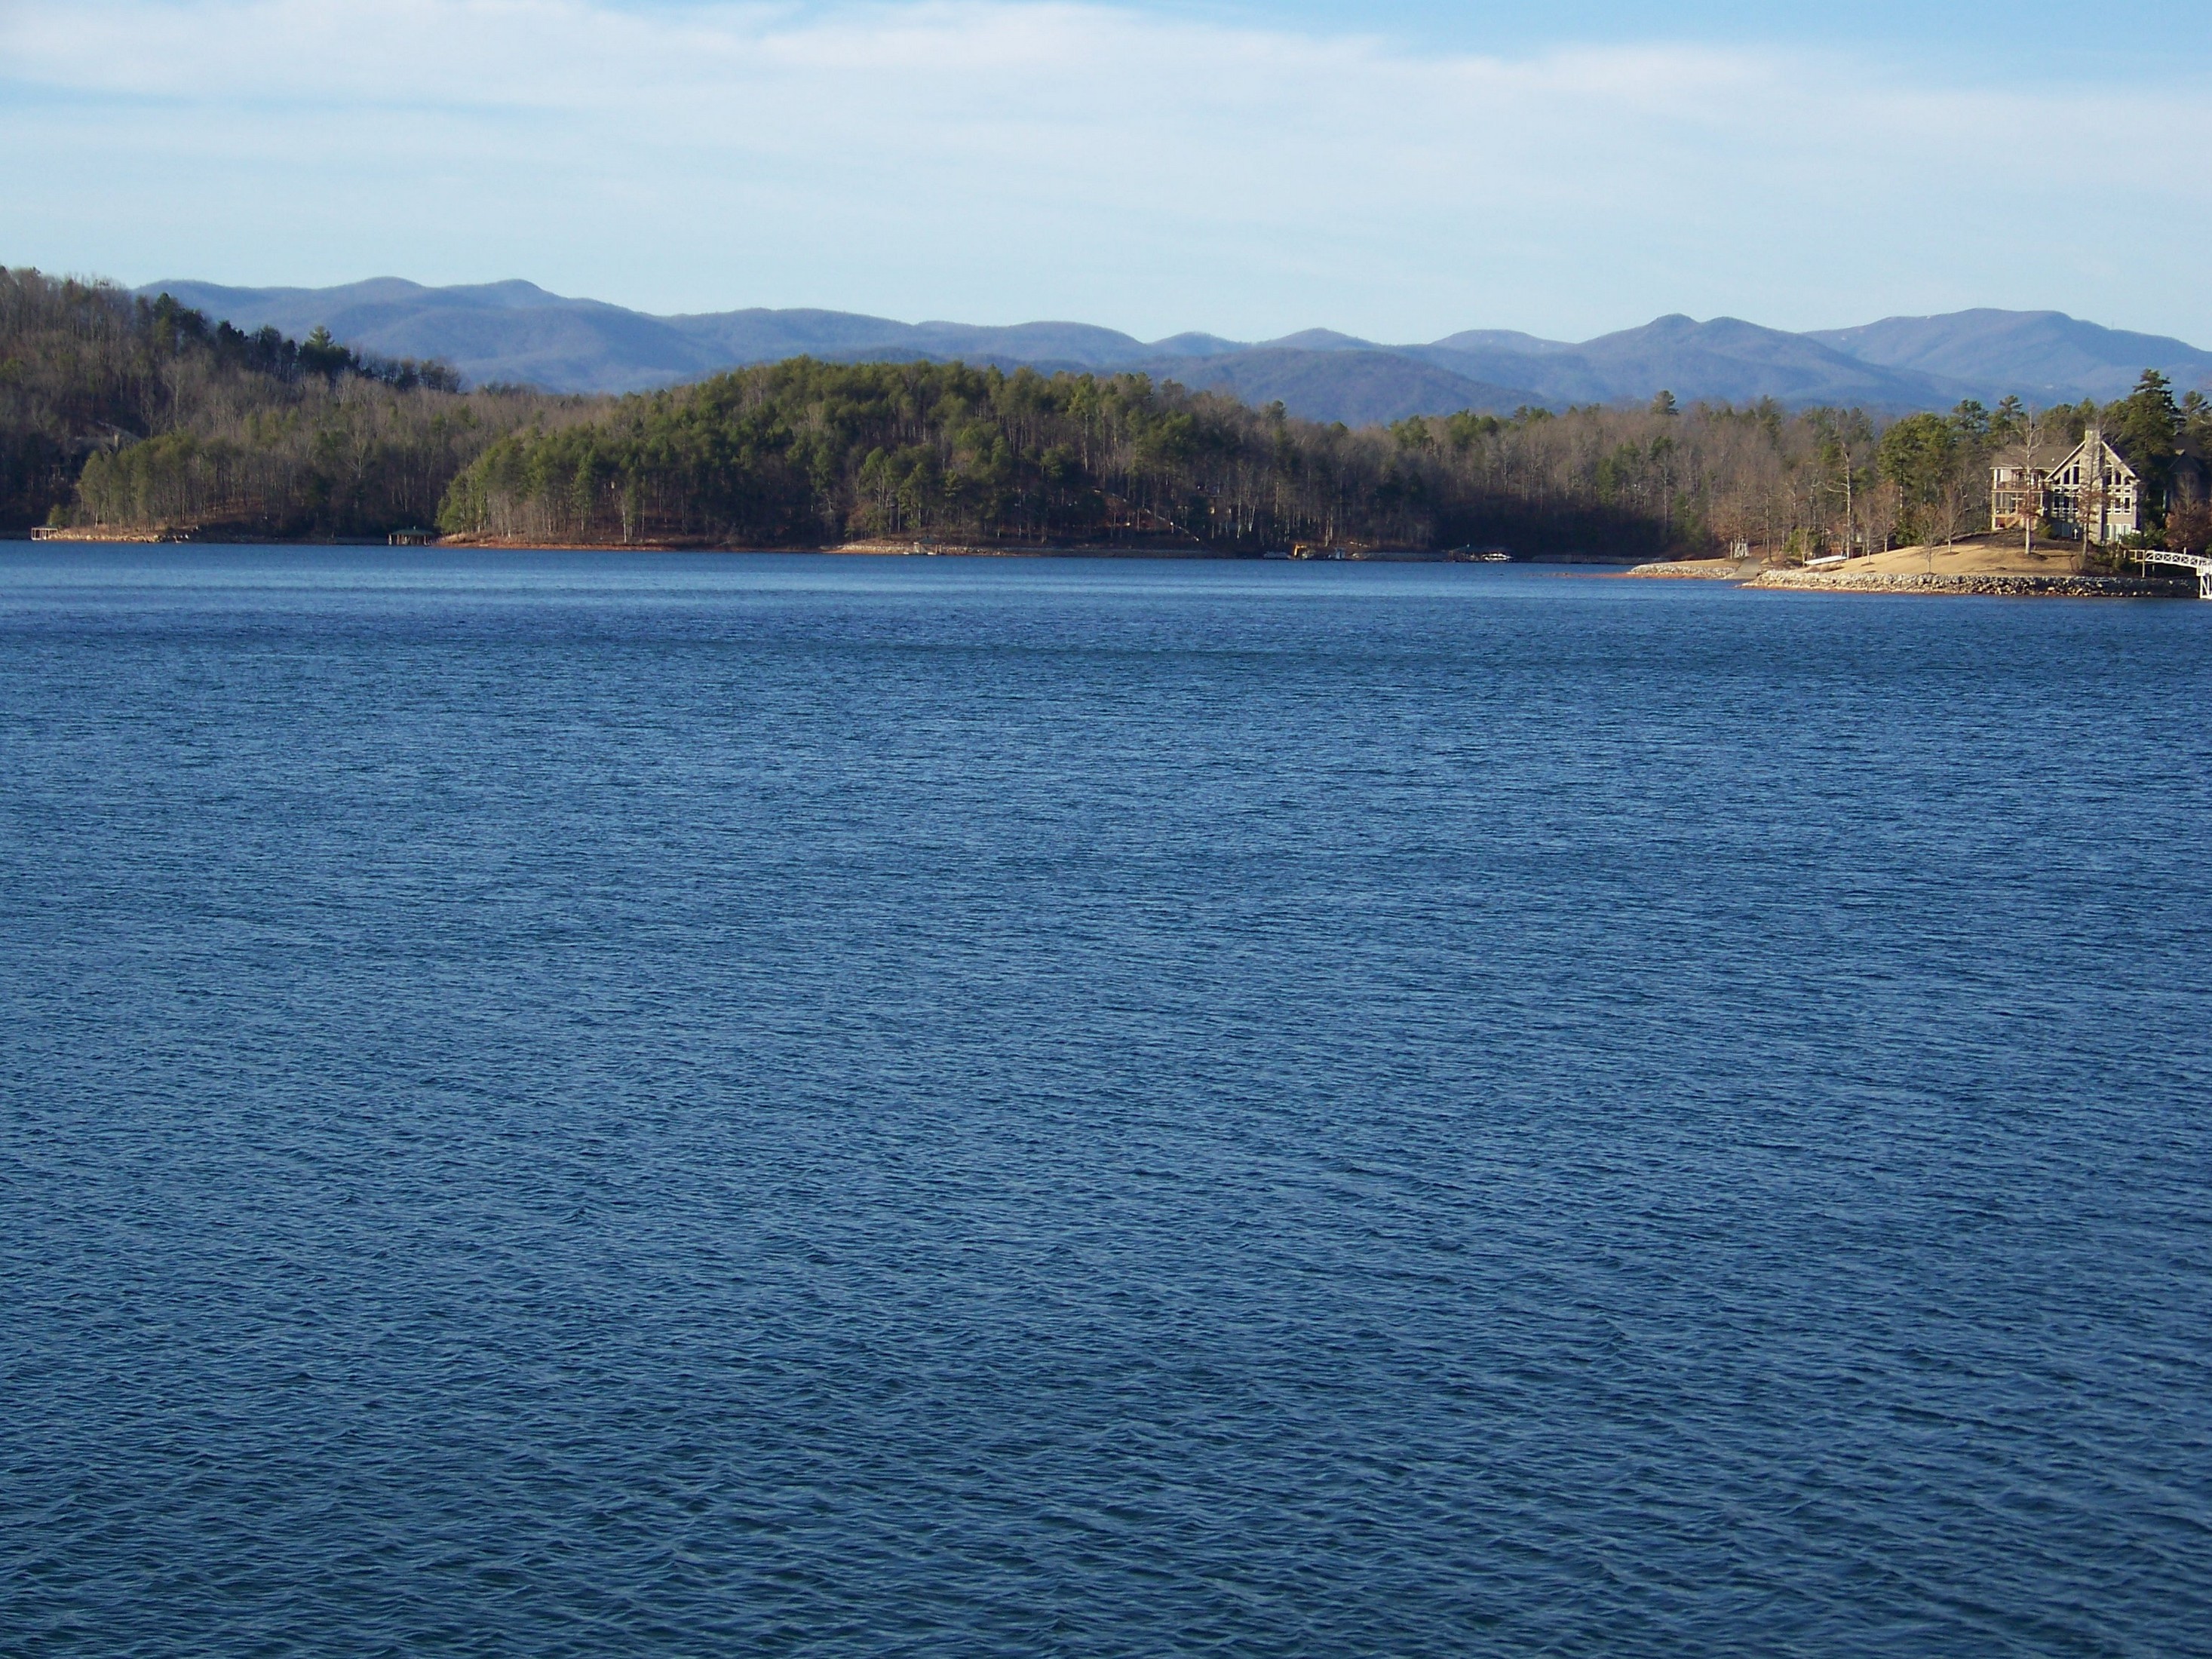 Terreno per Vendita alle ore Truly One of the Most Spectacular Home Sites on Lake Keowee RES F16 The Reserve At Lake Keowee, Sunset, Carolina Del Sud, 29685 Stati Uniti